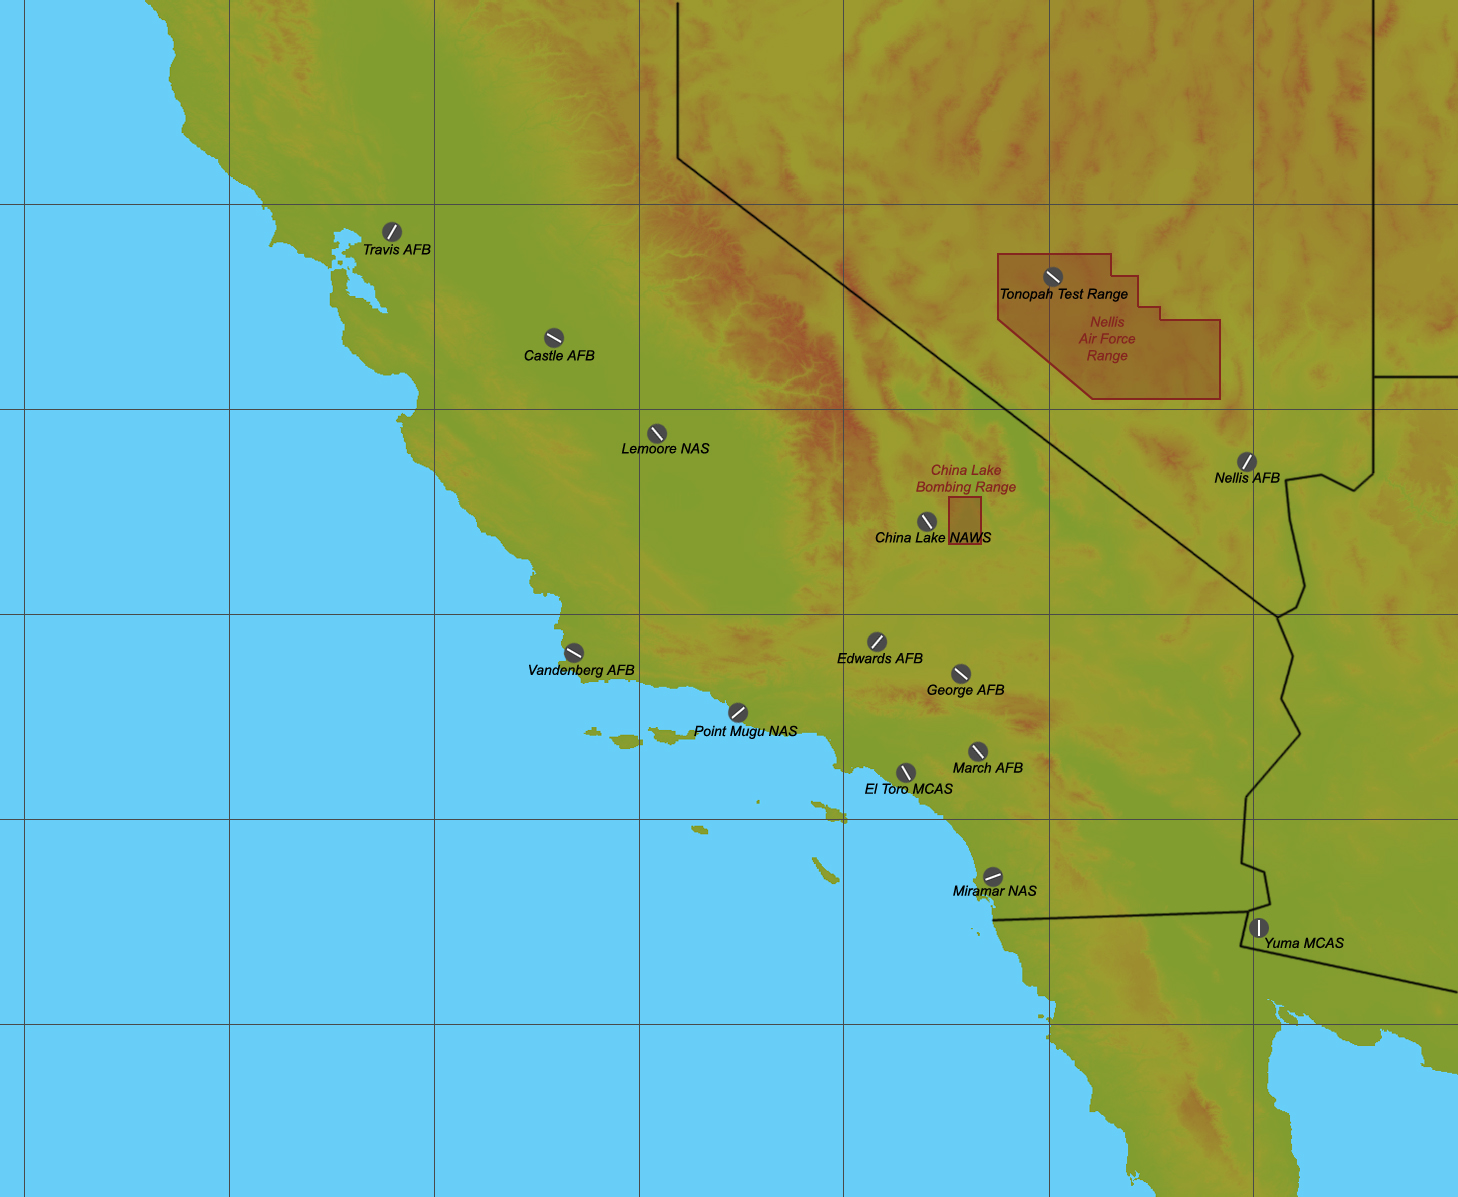 Southwest United States for SF2